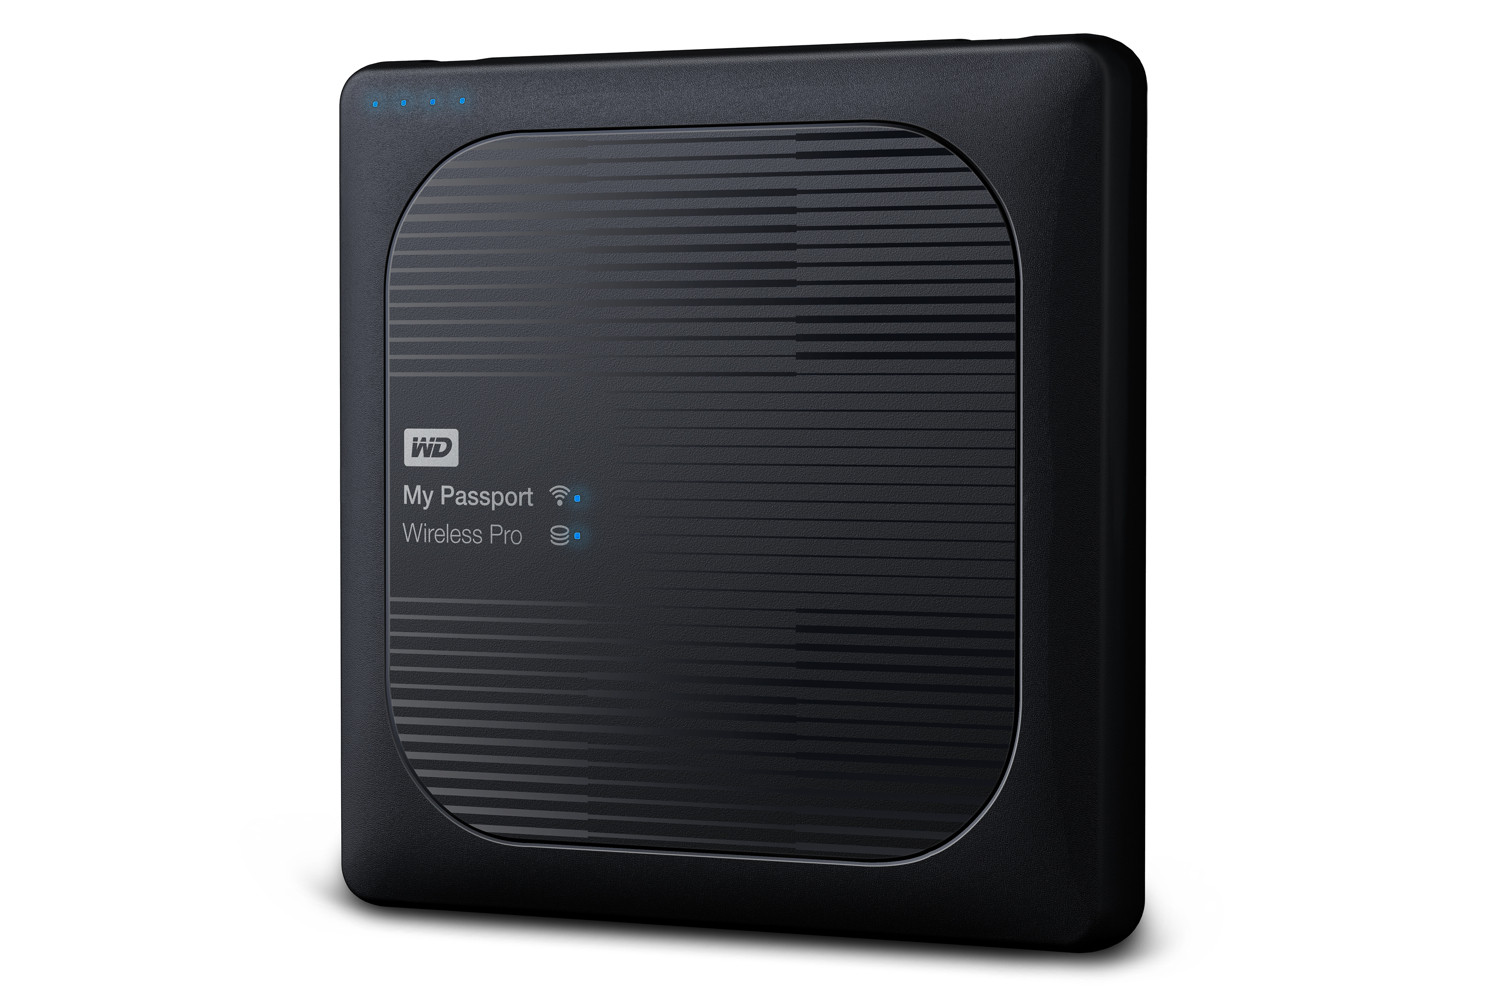 Ổ Cứng Di Động WD My Passport Wireless Pro 3TB USB 3.0 - WDBSMT0030BBK